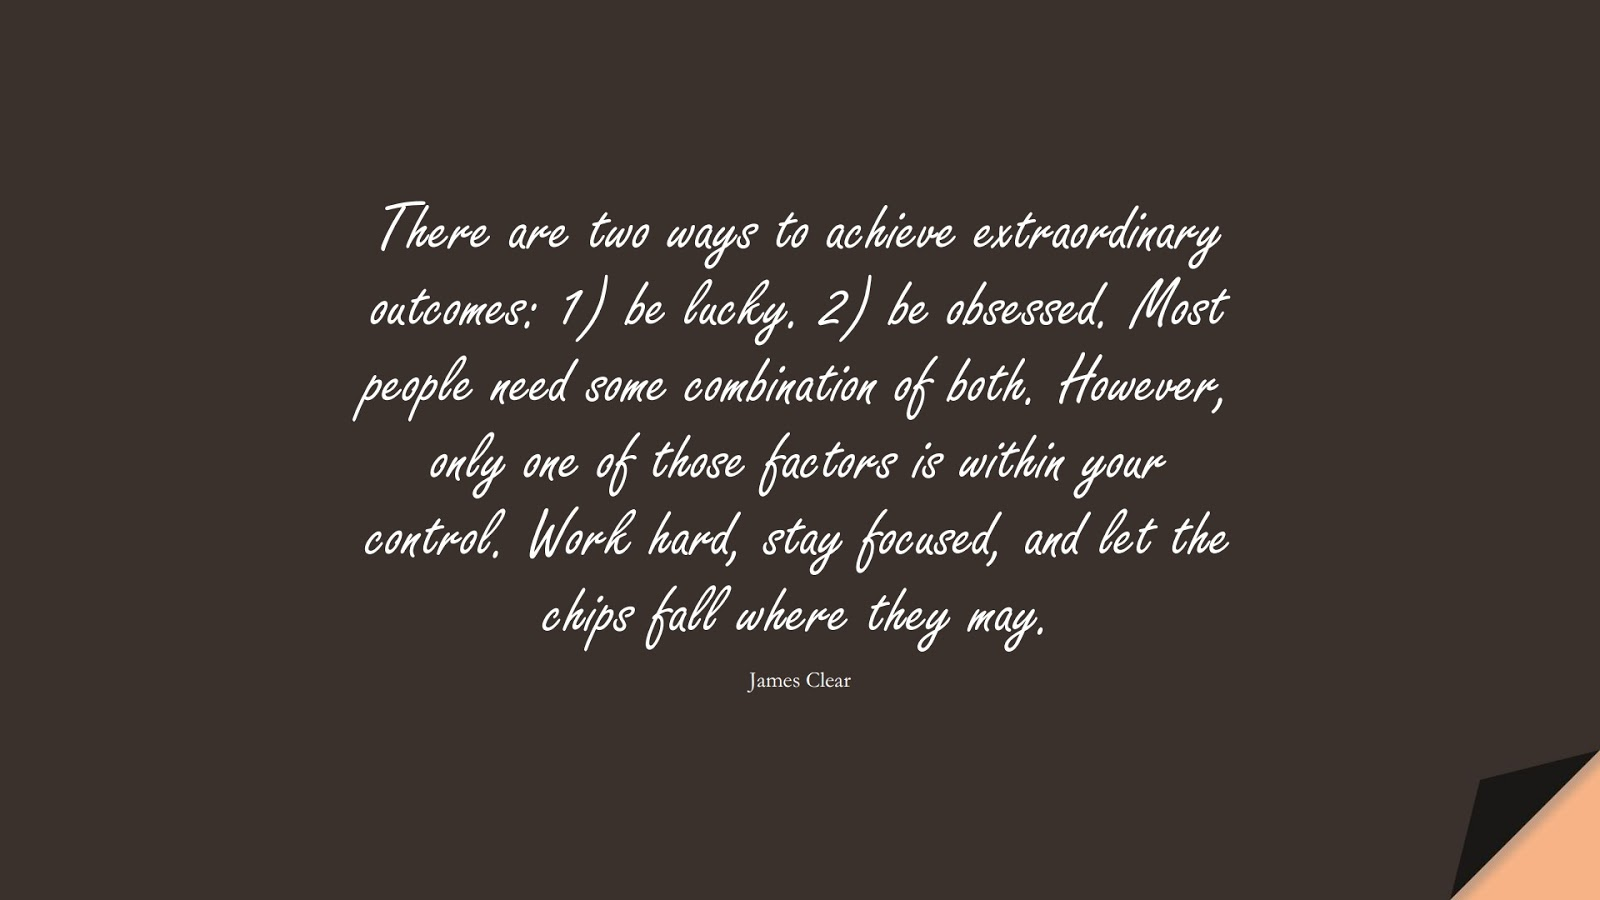 There are two ways to achieve extraordinary outcomes: 1) be lucky. 2) be obsessed. Most people need some combination of both. However, only one of those factors is within your control. Work hard, stay focused, and let the chips fall where they may. (James Clear);  #PerseveranceQuotes